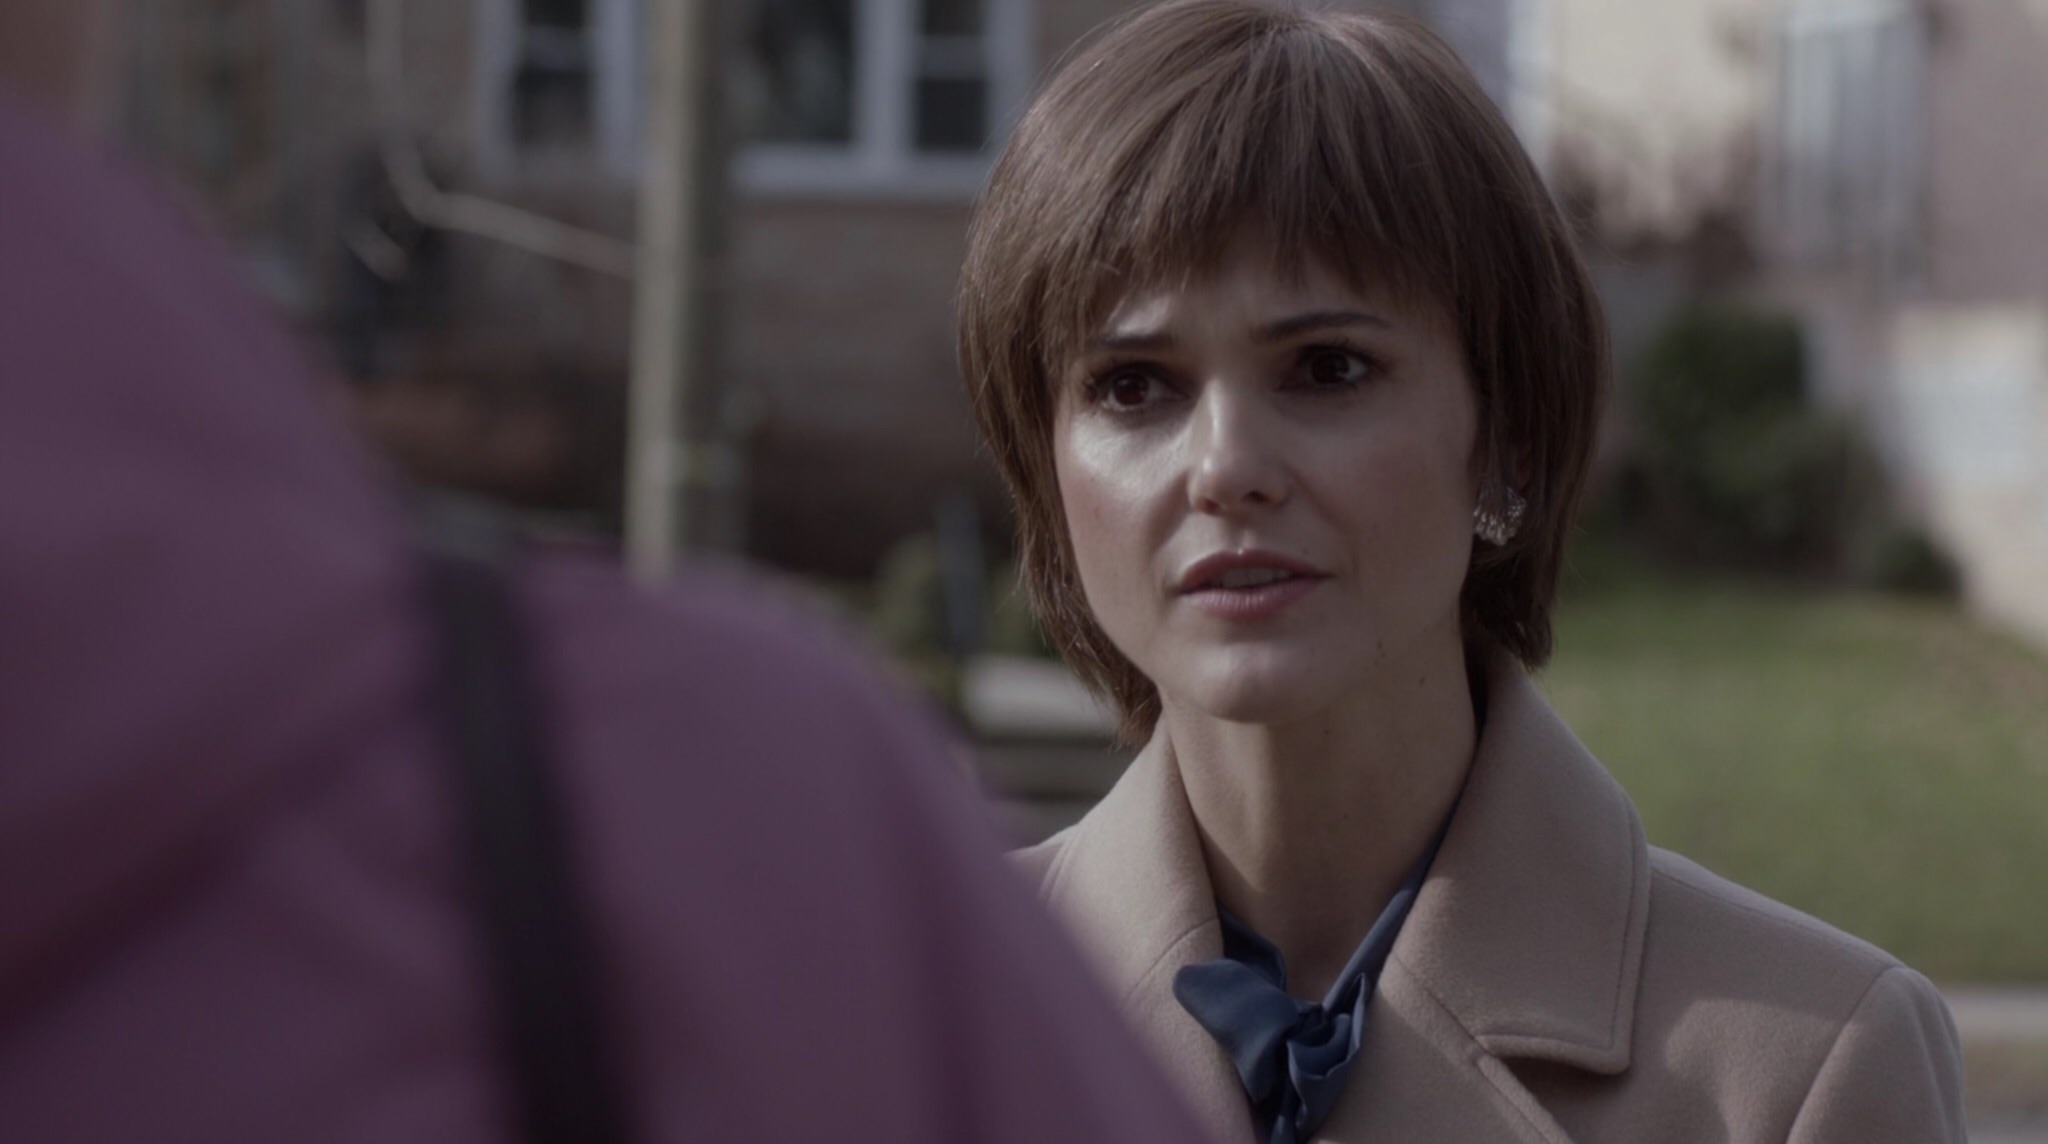 Elizabeth's wig doesn't even look like real hair this time